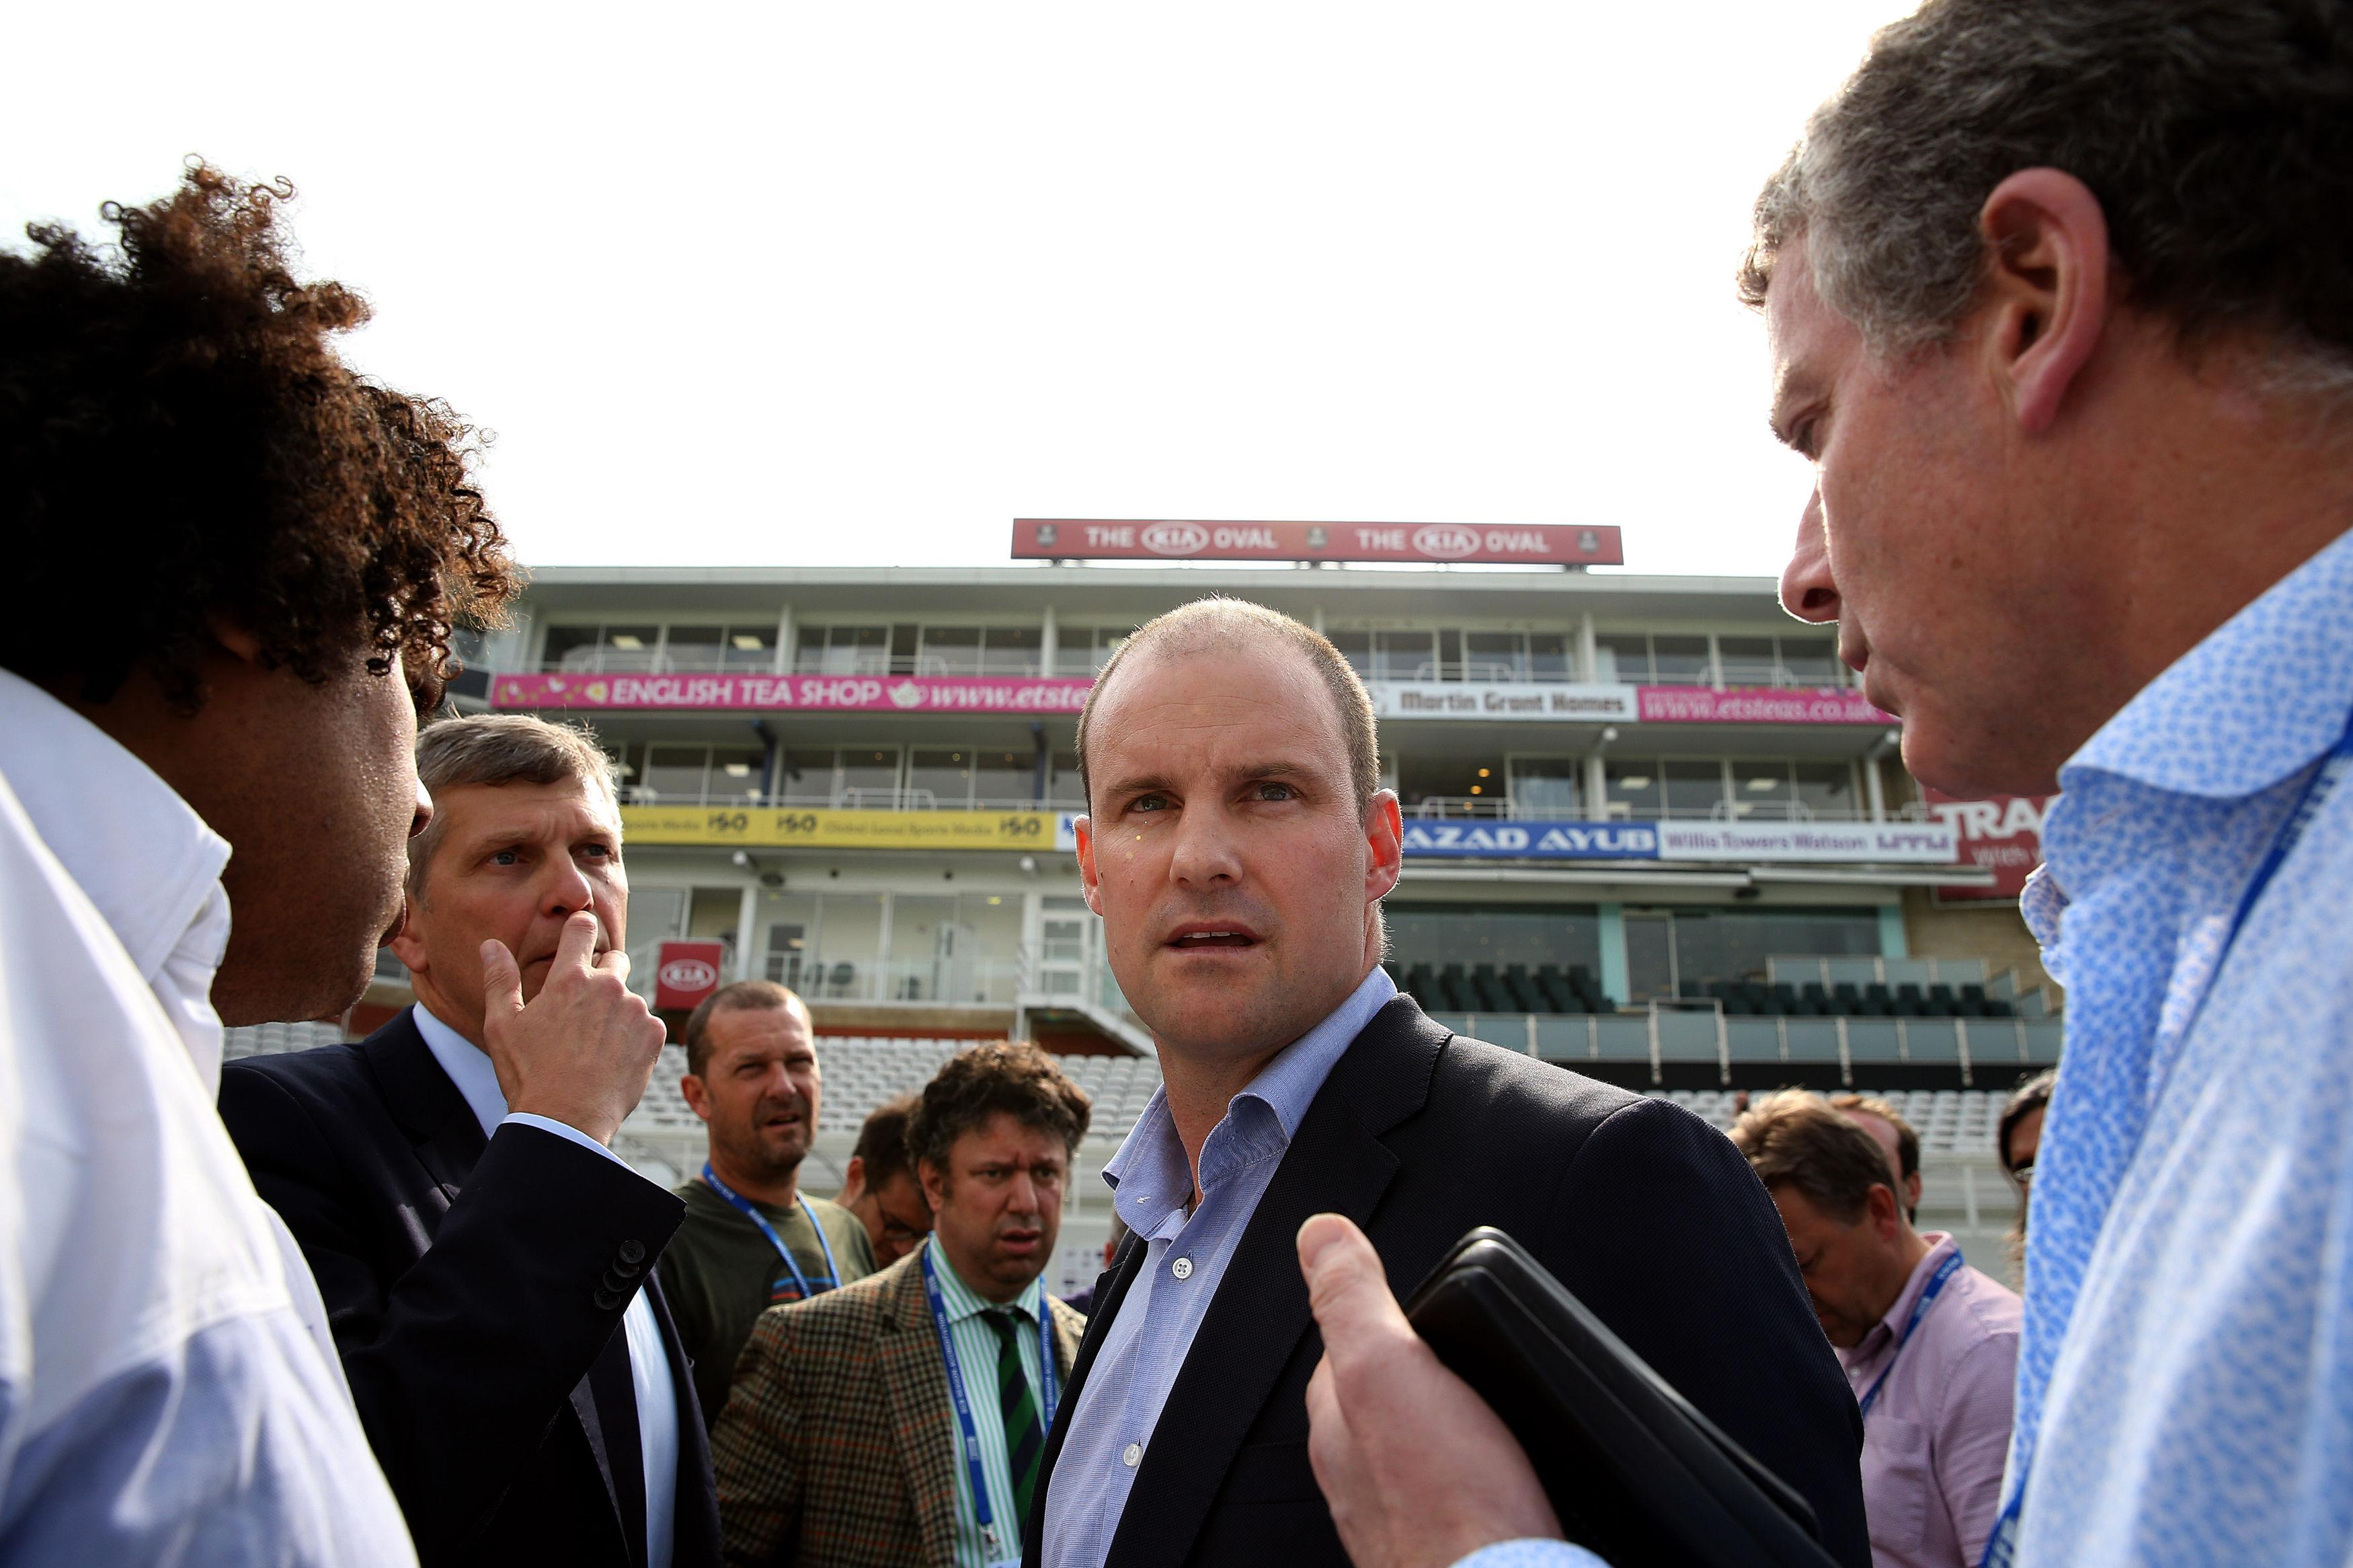 Andrew Strauss has stepped down in his role as England's director of cricket after revealing his wife is fighting cancer